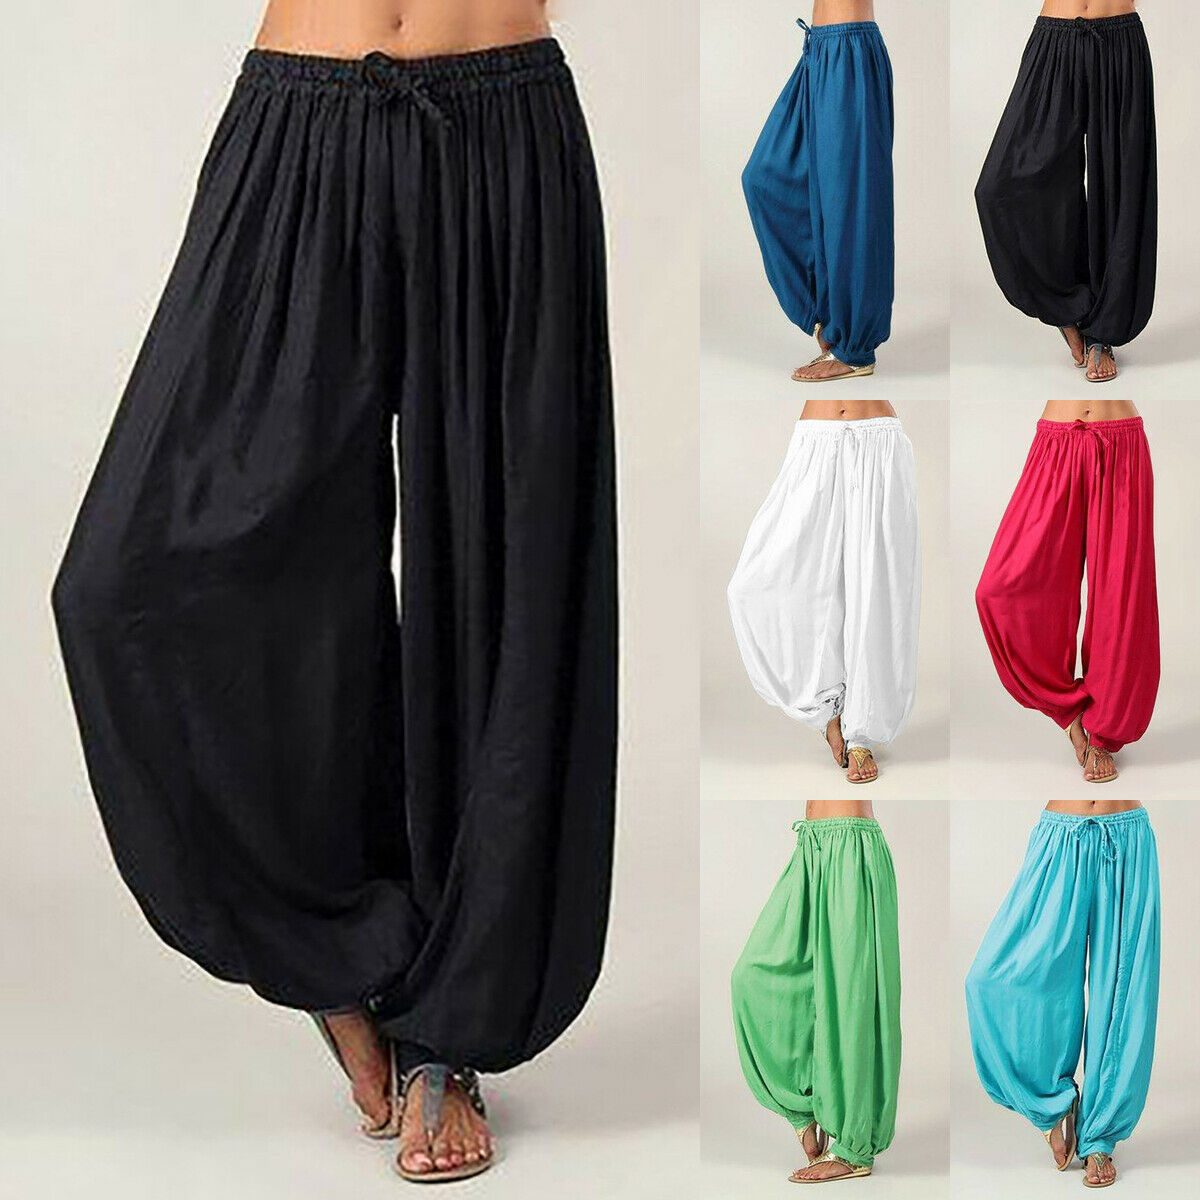 AU WOMEN HAREM TROUSERS ALI BABA LONG PANTS BAGGY HAREEM LEGGINGS PLUS SIZE 8-18